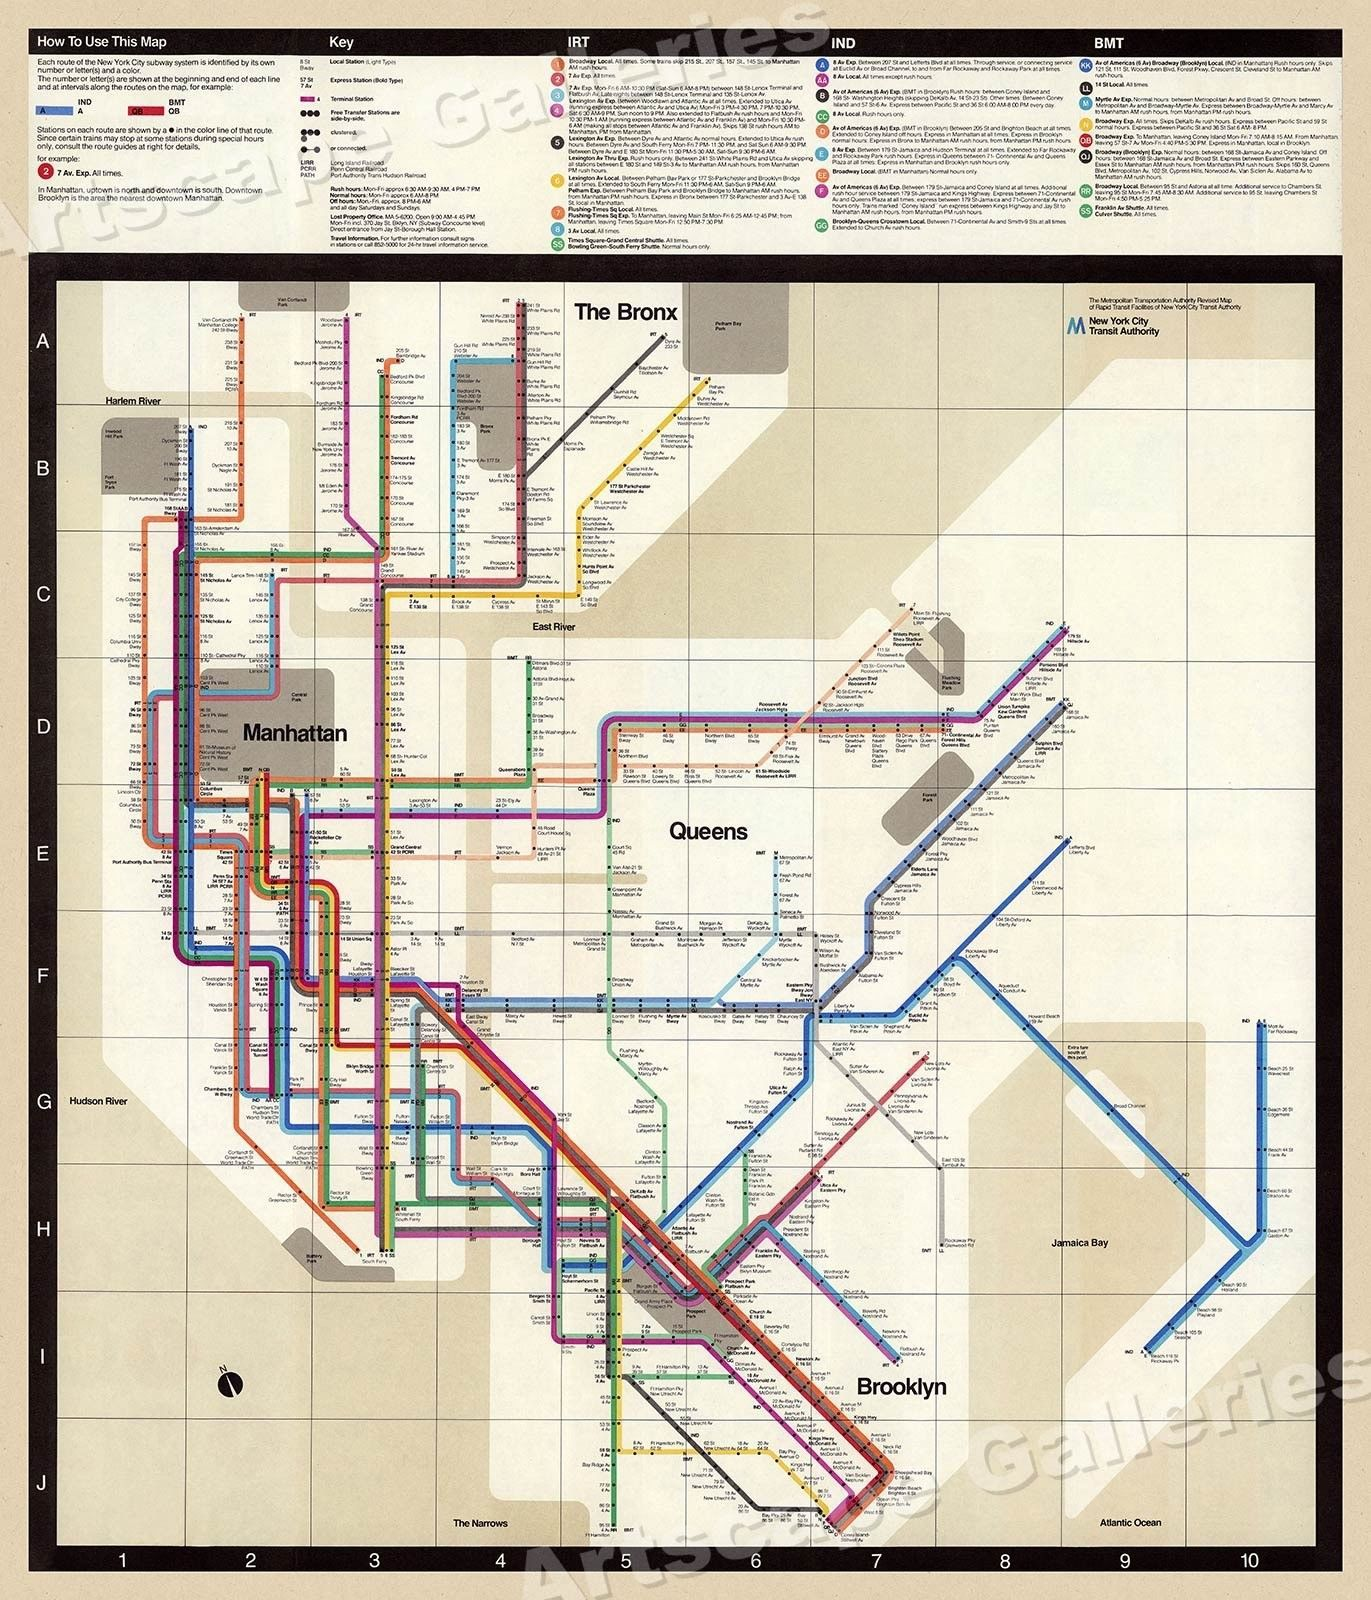 Massimo Vignelli 1972 Nyc Subway Map.1972 Massimo Vignelli New York Subway Map 24x28 Project Ml